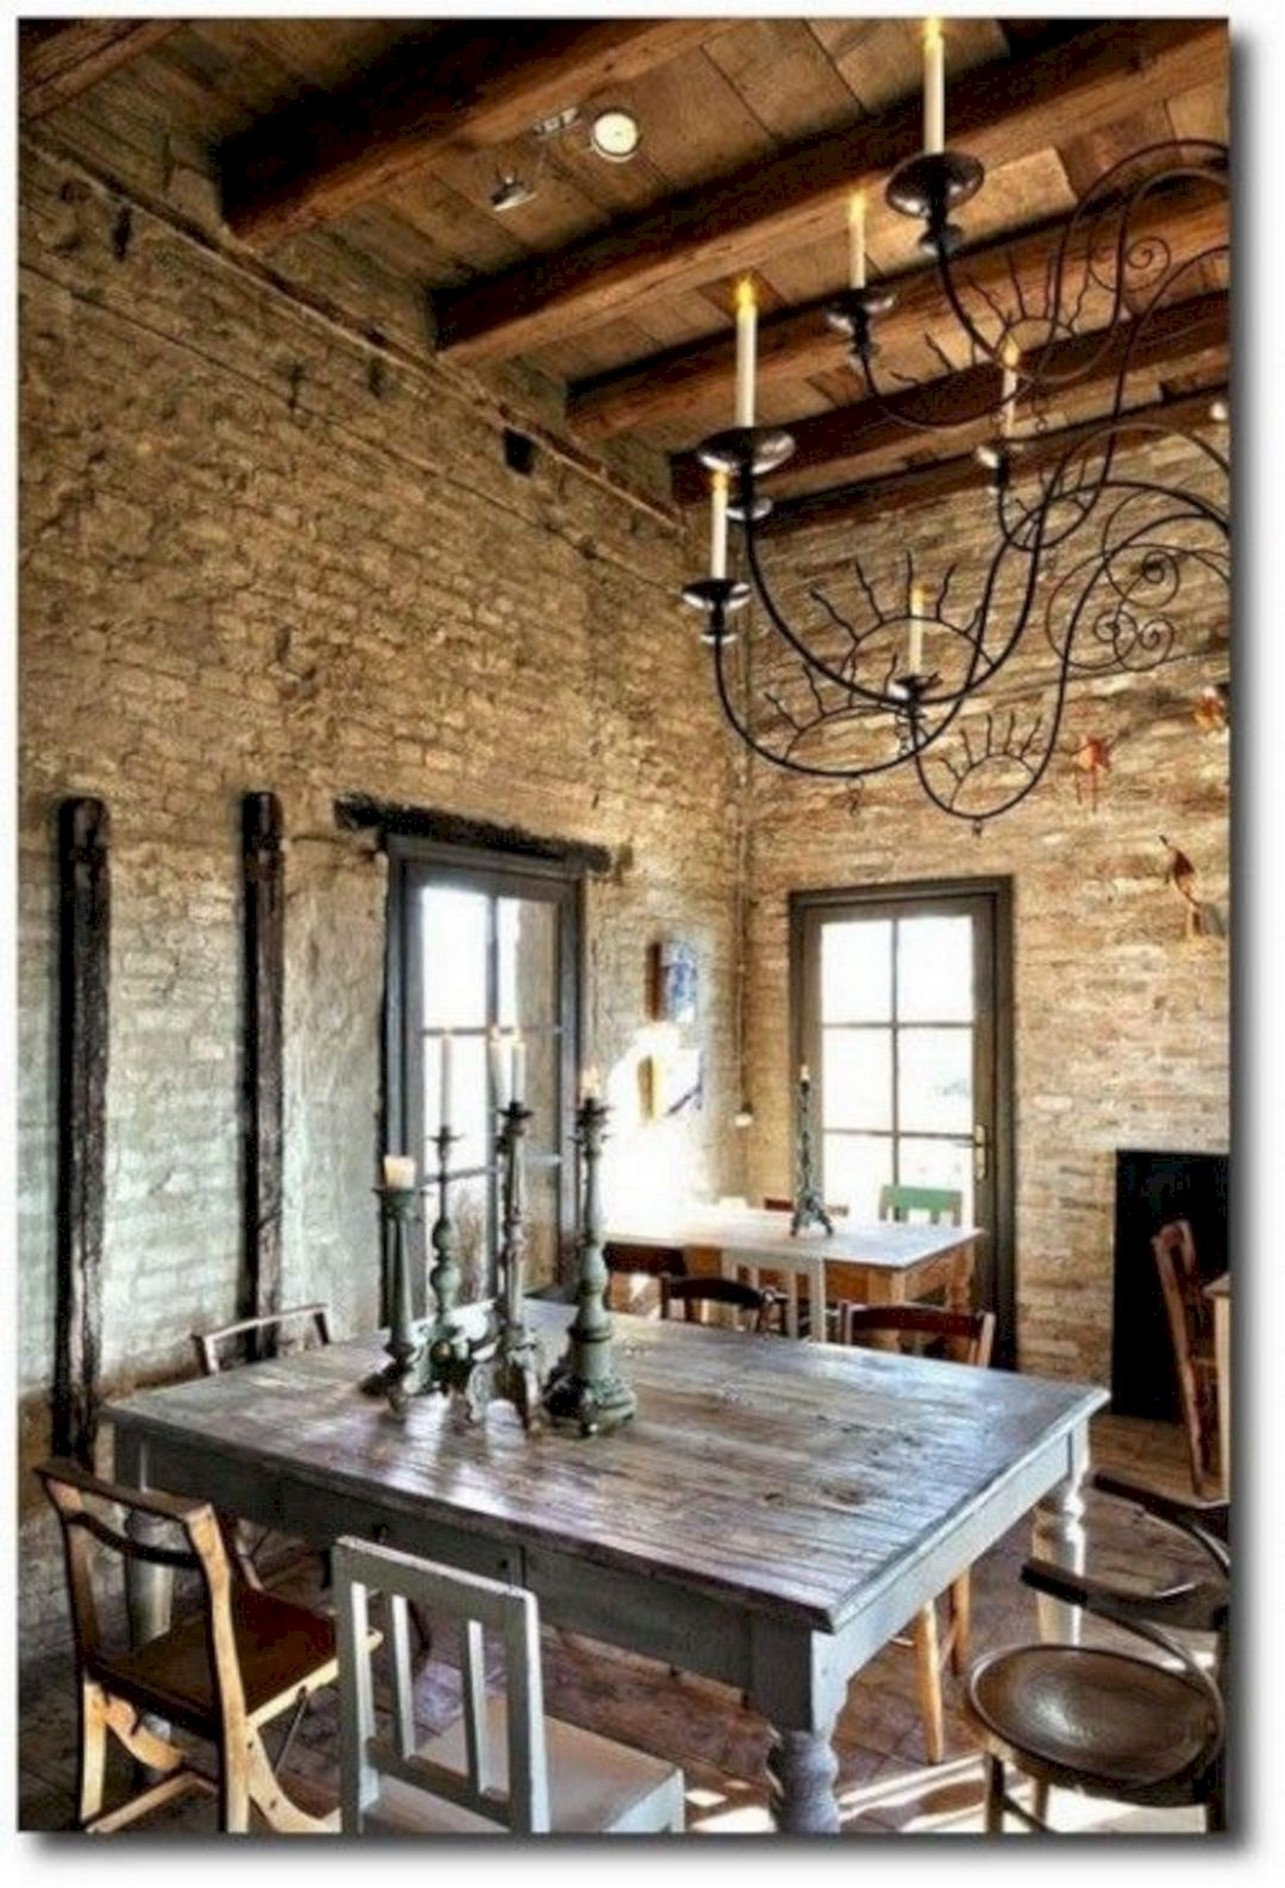 67 Rustic Home Decorating Ideas In 2020 Home Decor 49